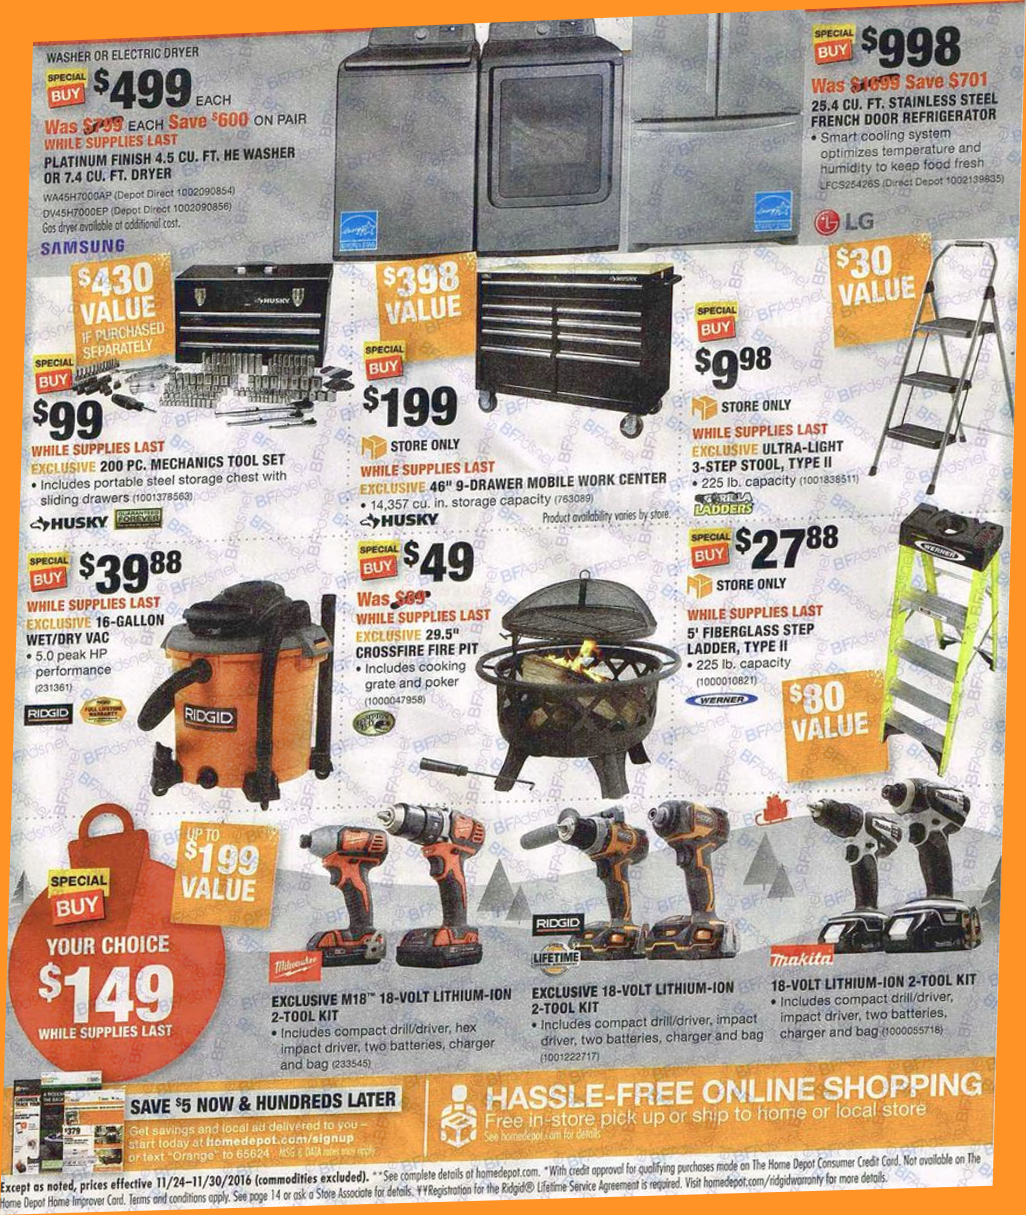 HOME DEPOT BLACK FRIDAY 2019 OPEN